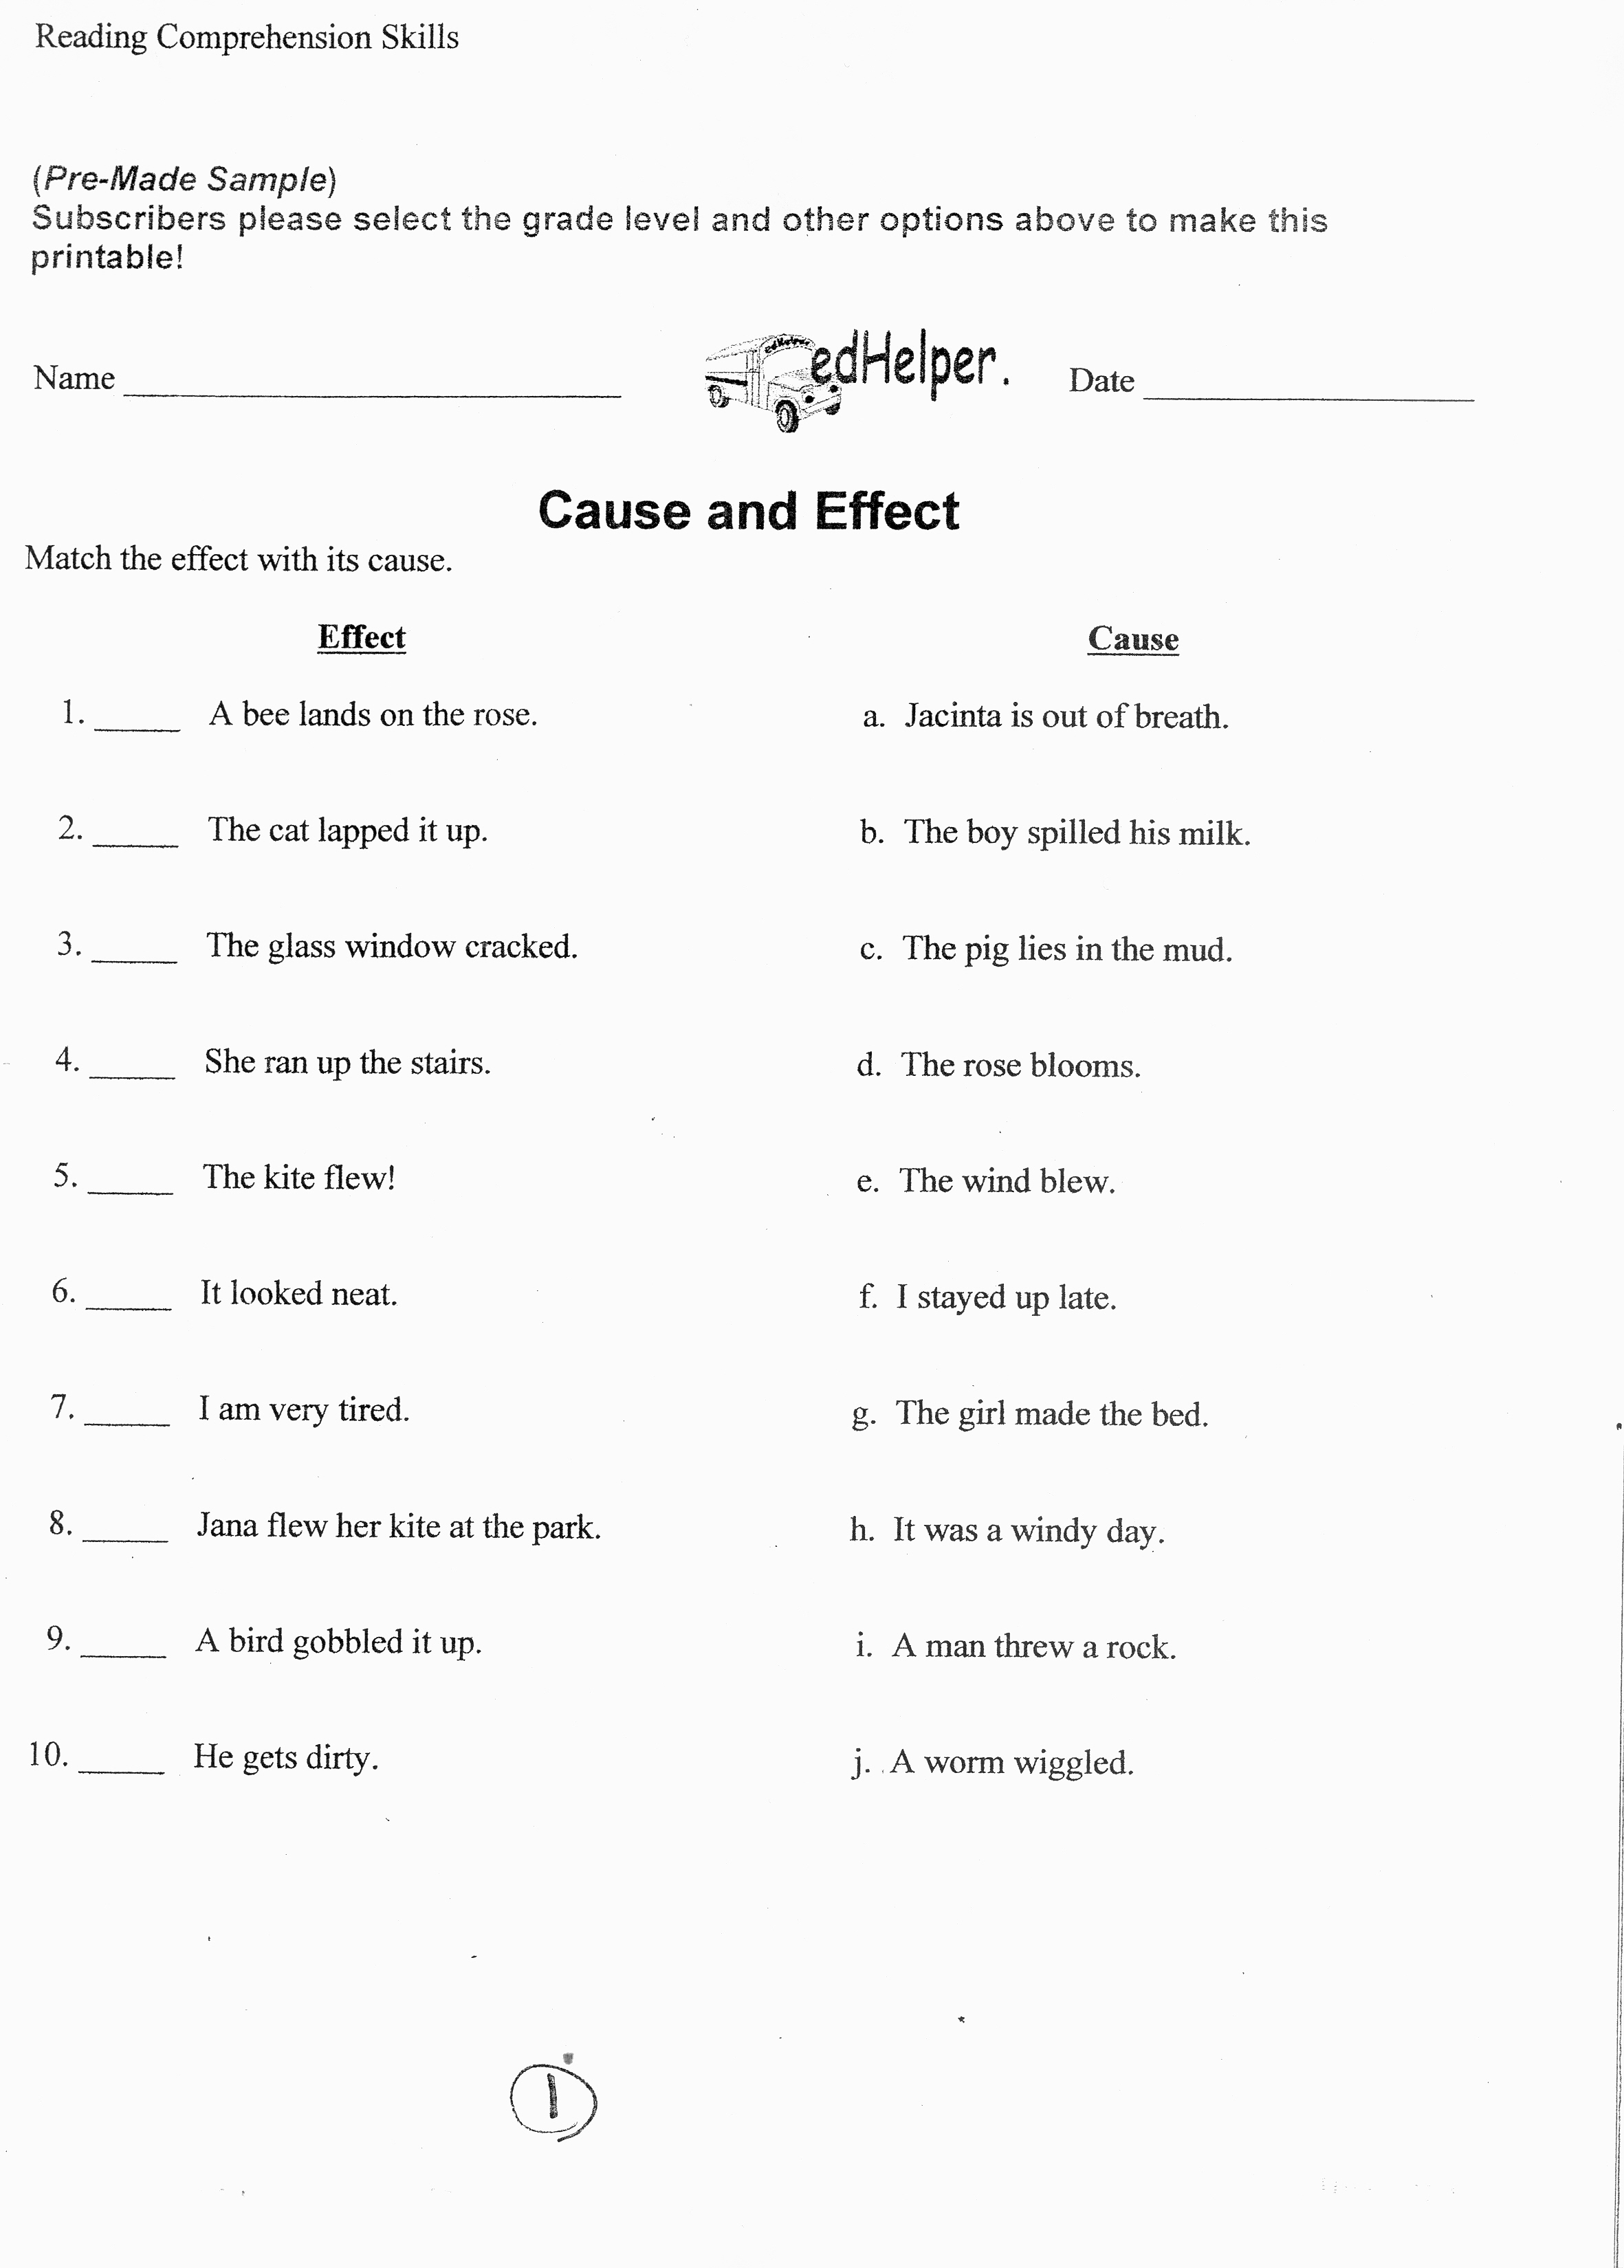 Printables Language Arts Worksheets For 6th Grade 6th grade lessons middle school language arts help cause and effect worksheet